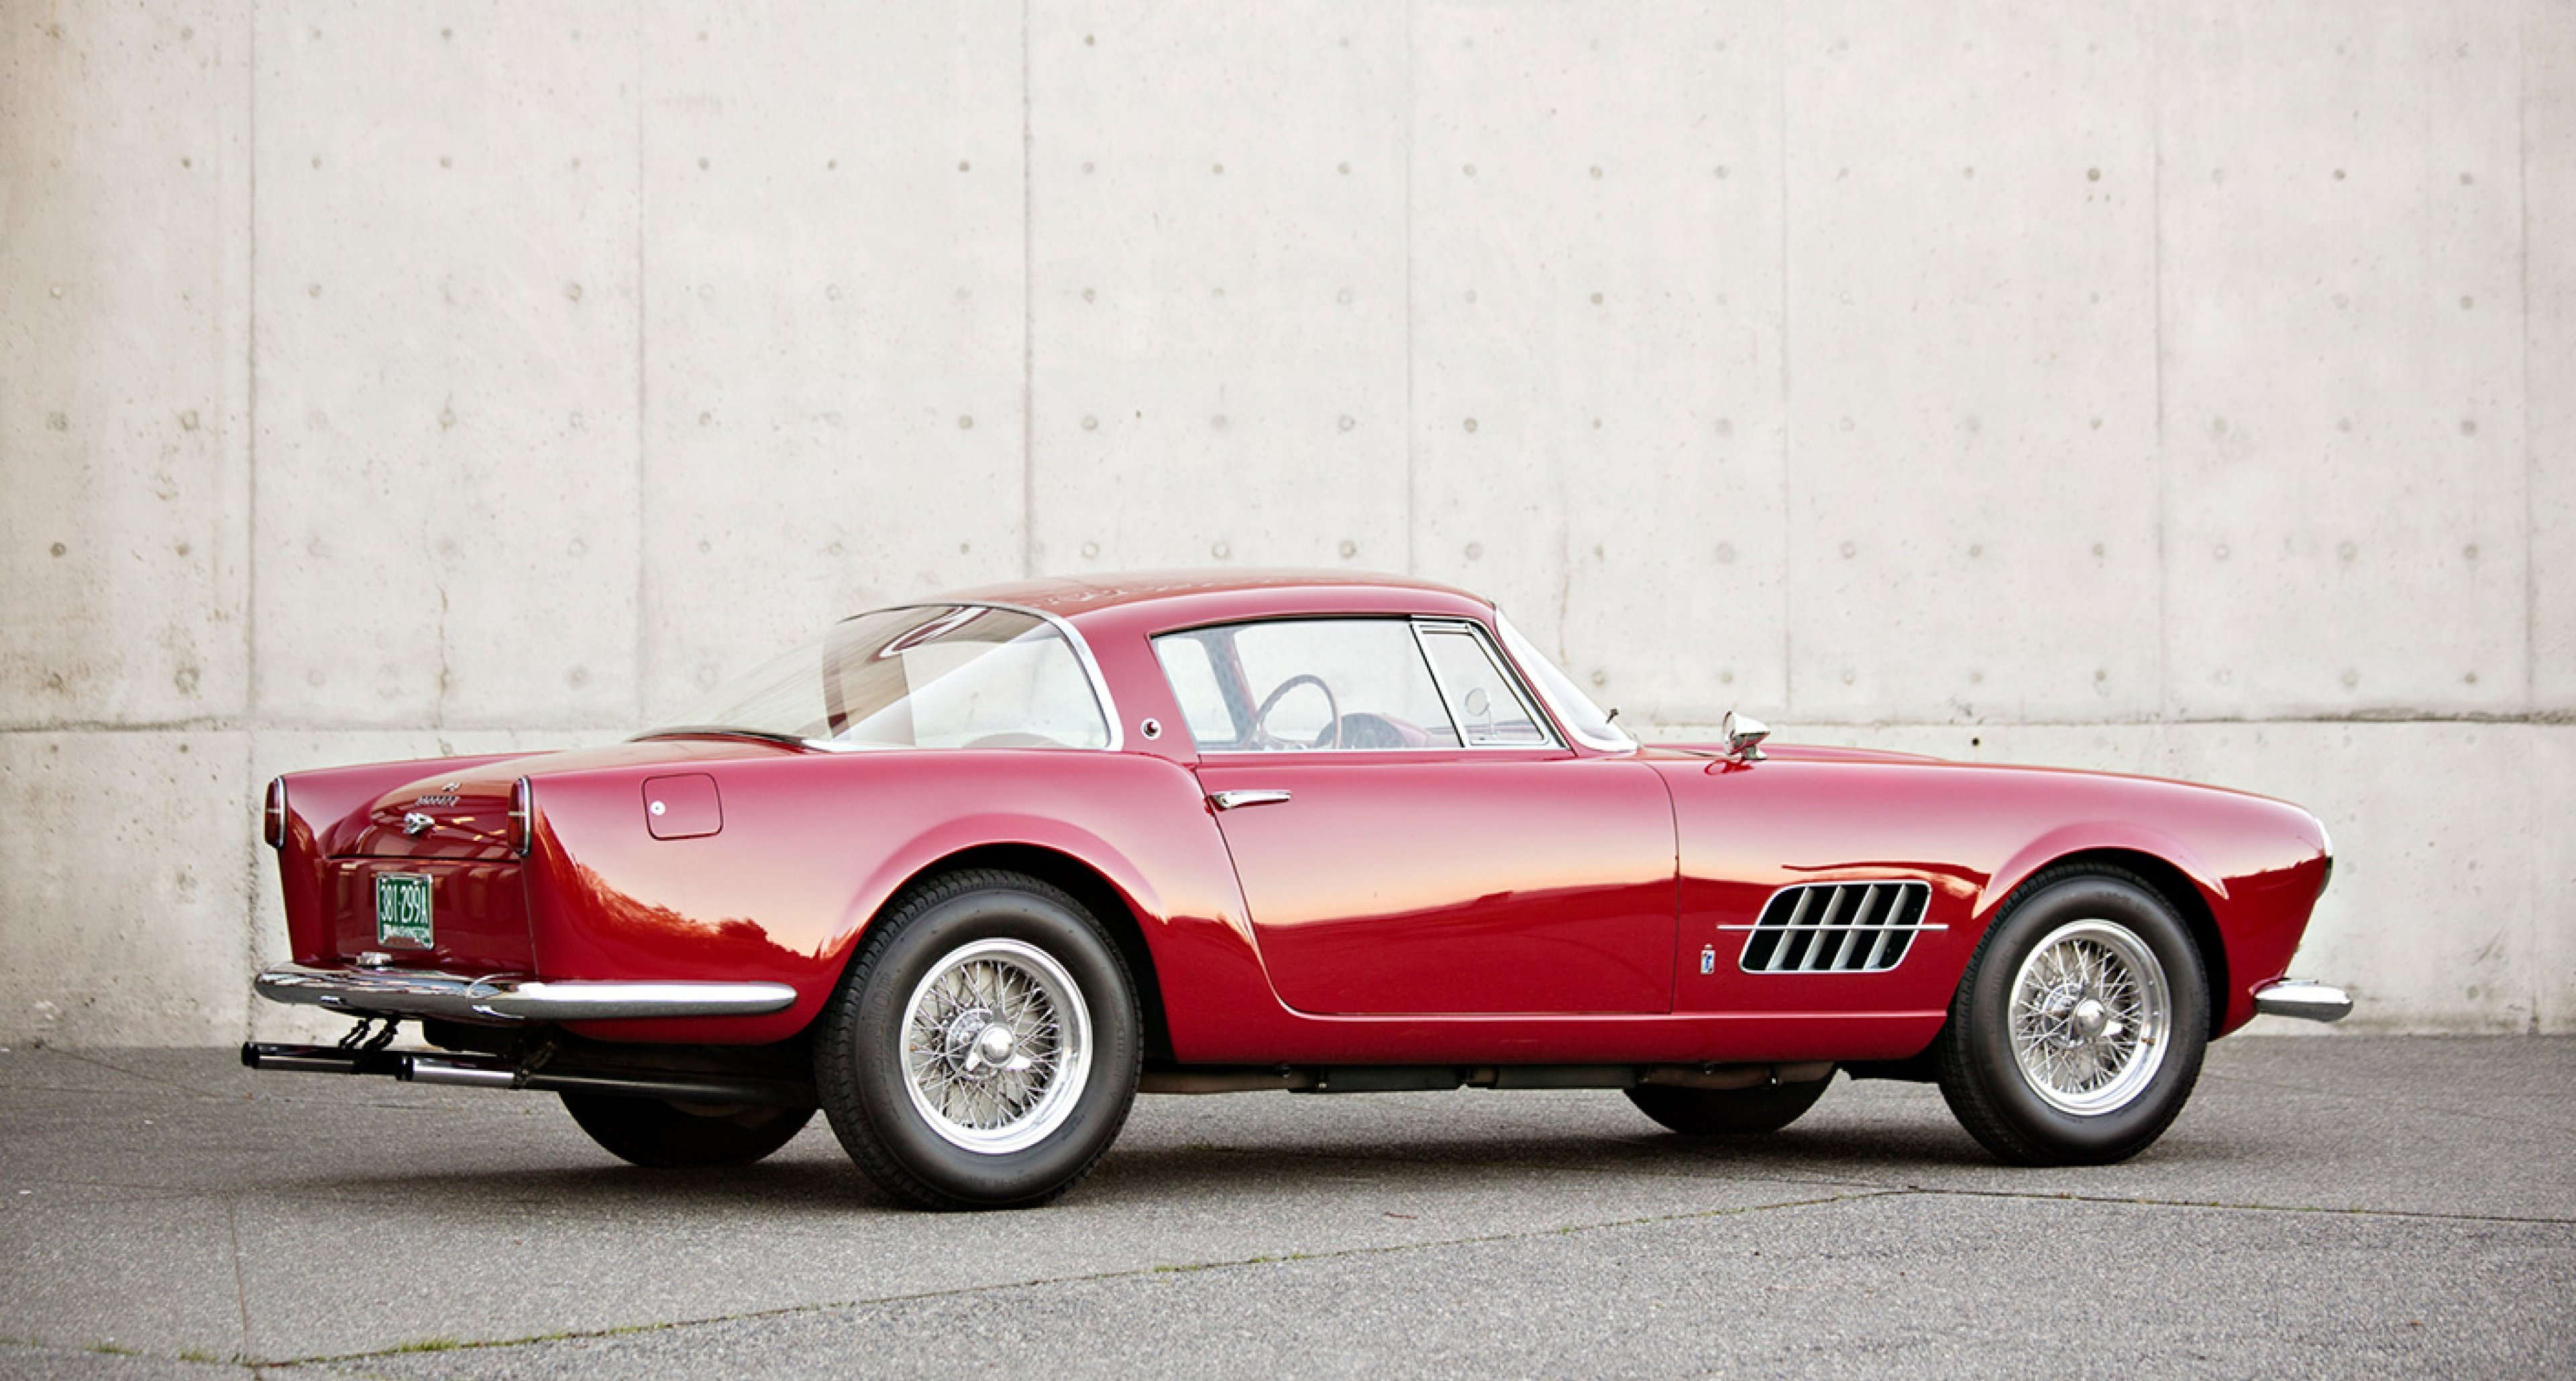 1956 Ferrari 410 Superamerica Series I Coupe sold by Gooding for $3,300,000